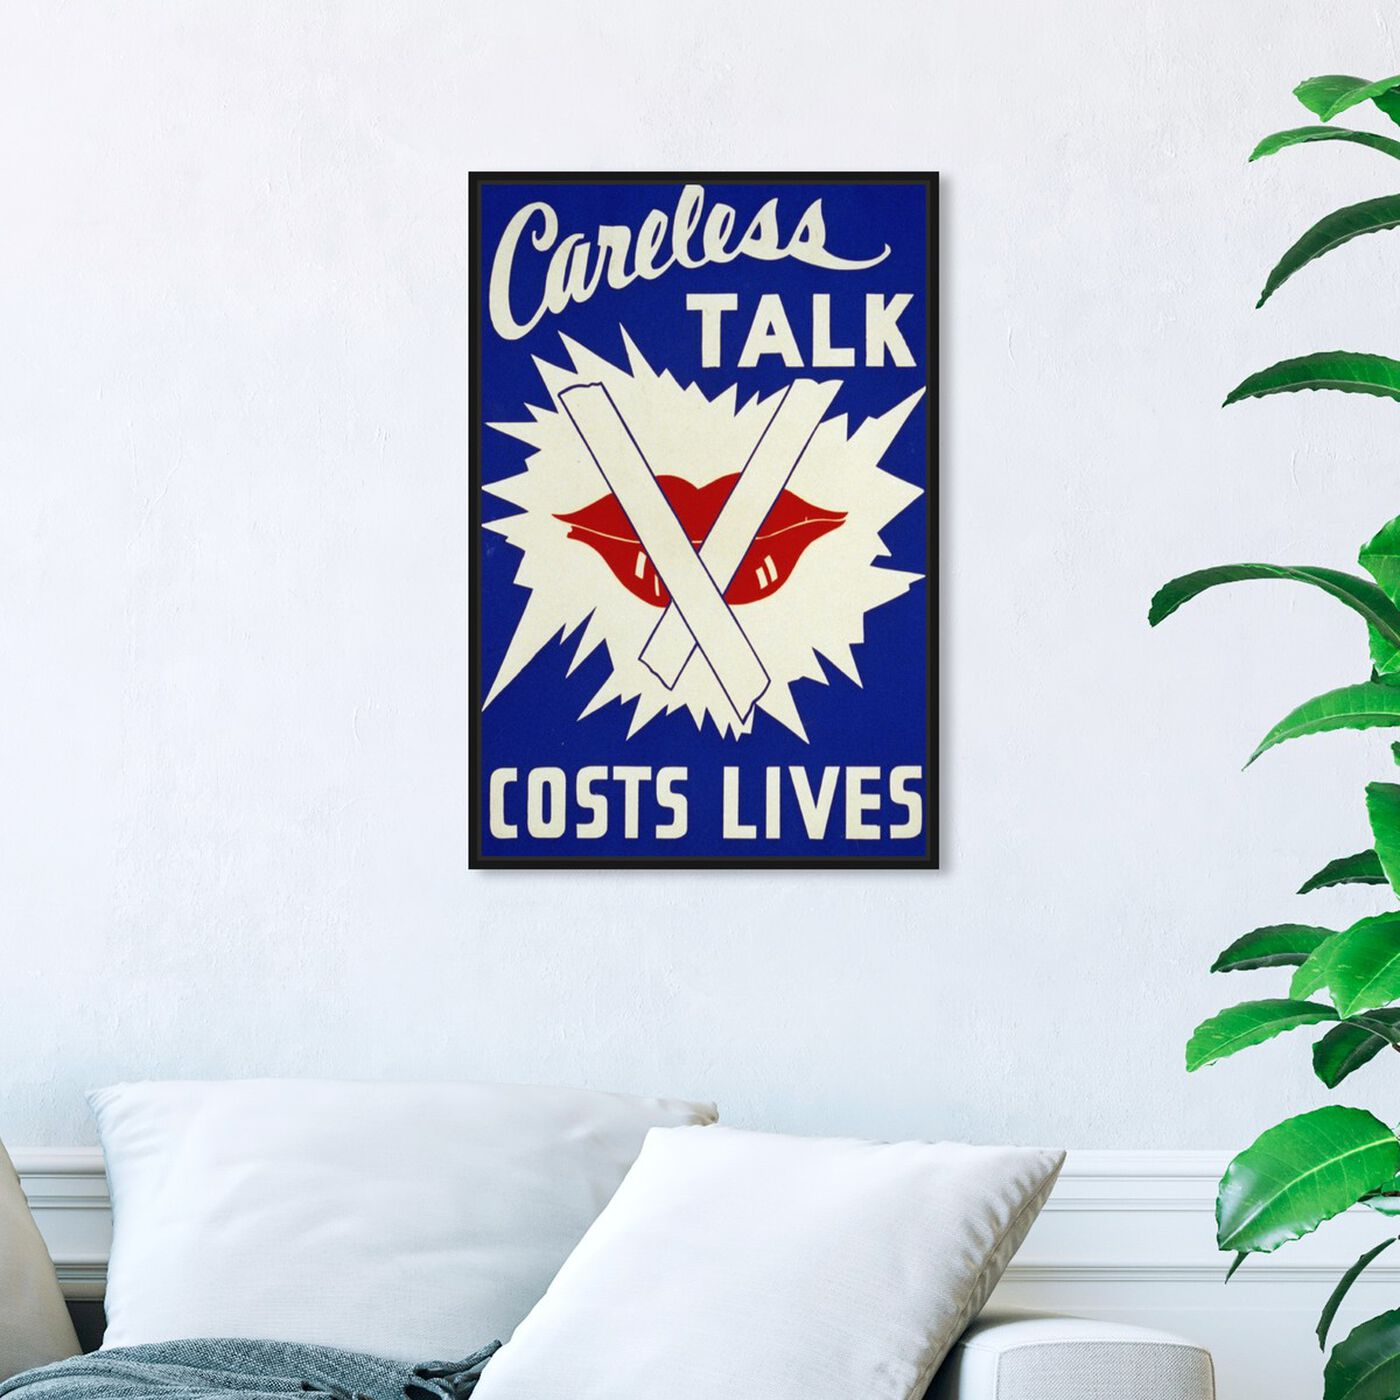 Hanging view of Careless Talk featuring advertising and posters art.